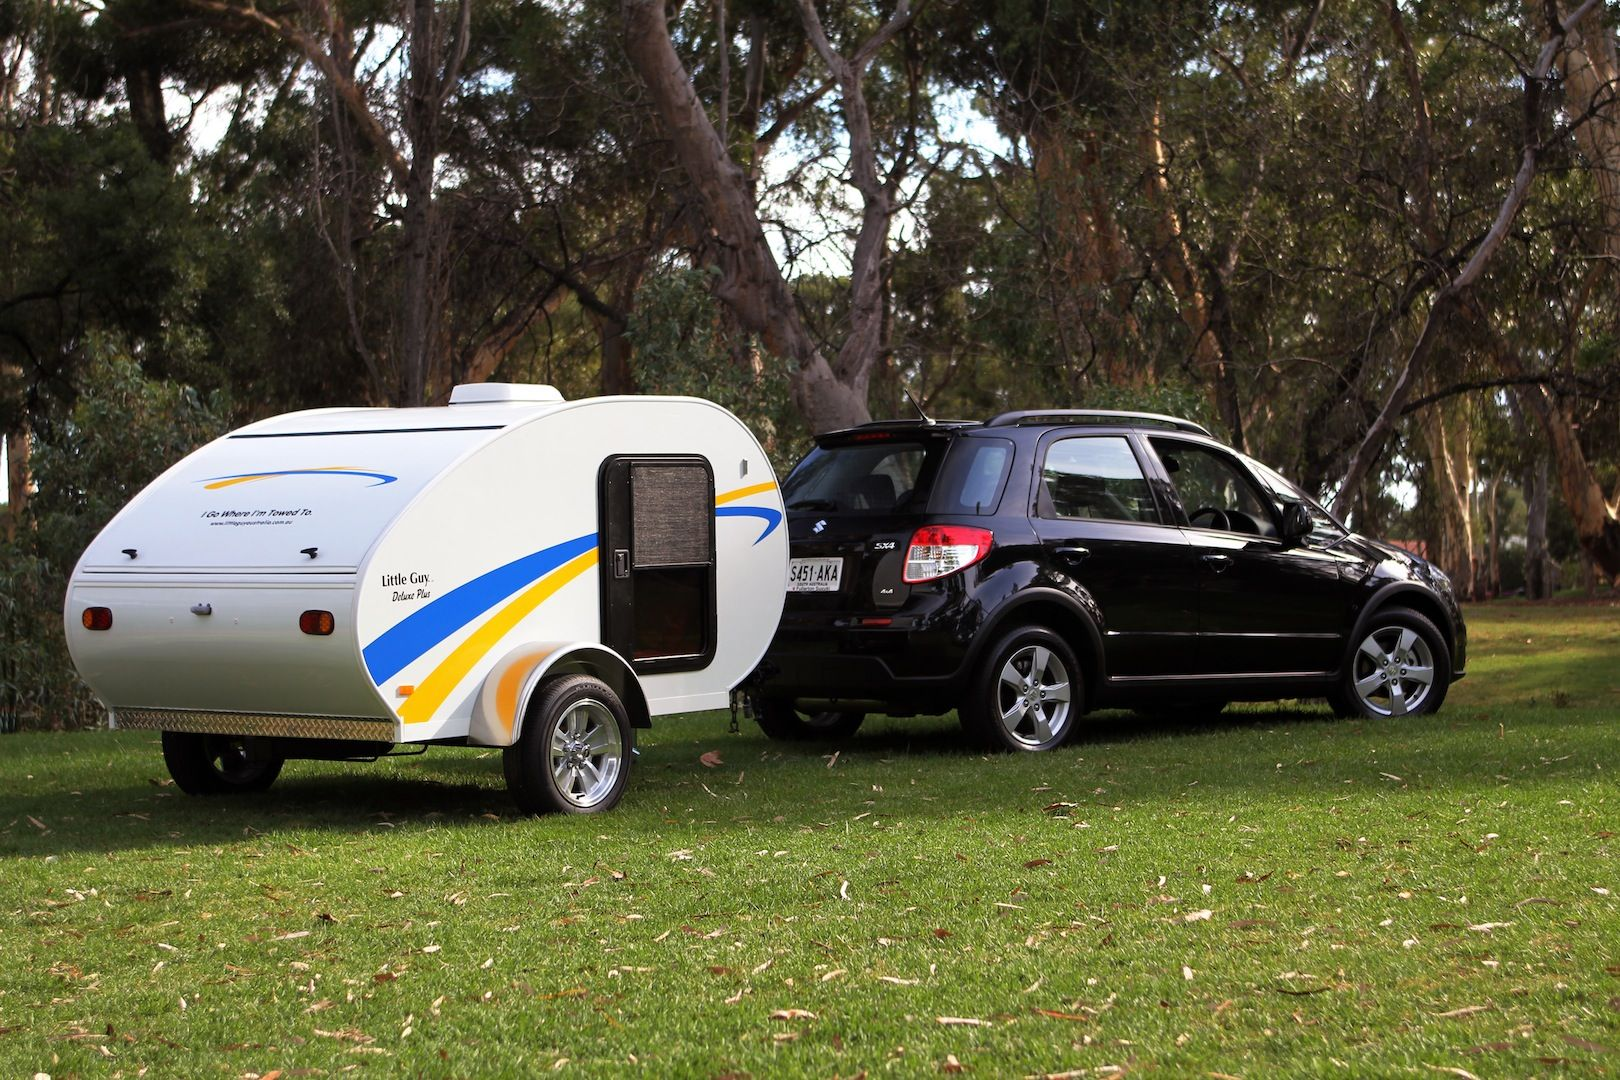 Camper For Small Cars Little Guy Trailers Priced From 10 460